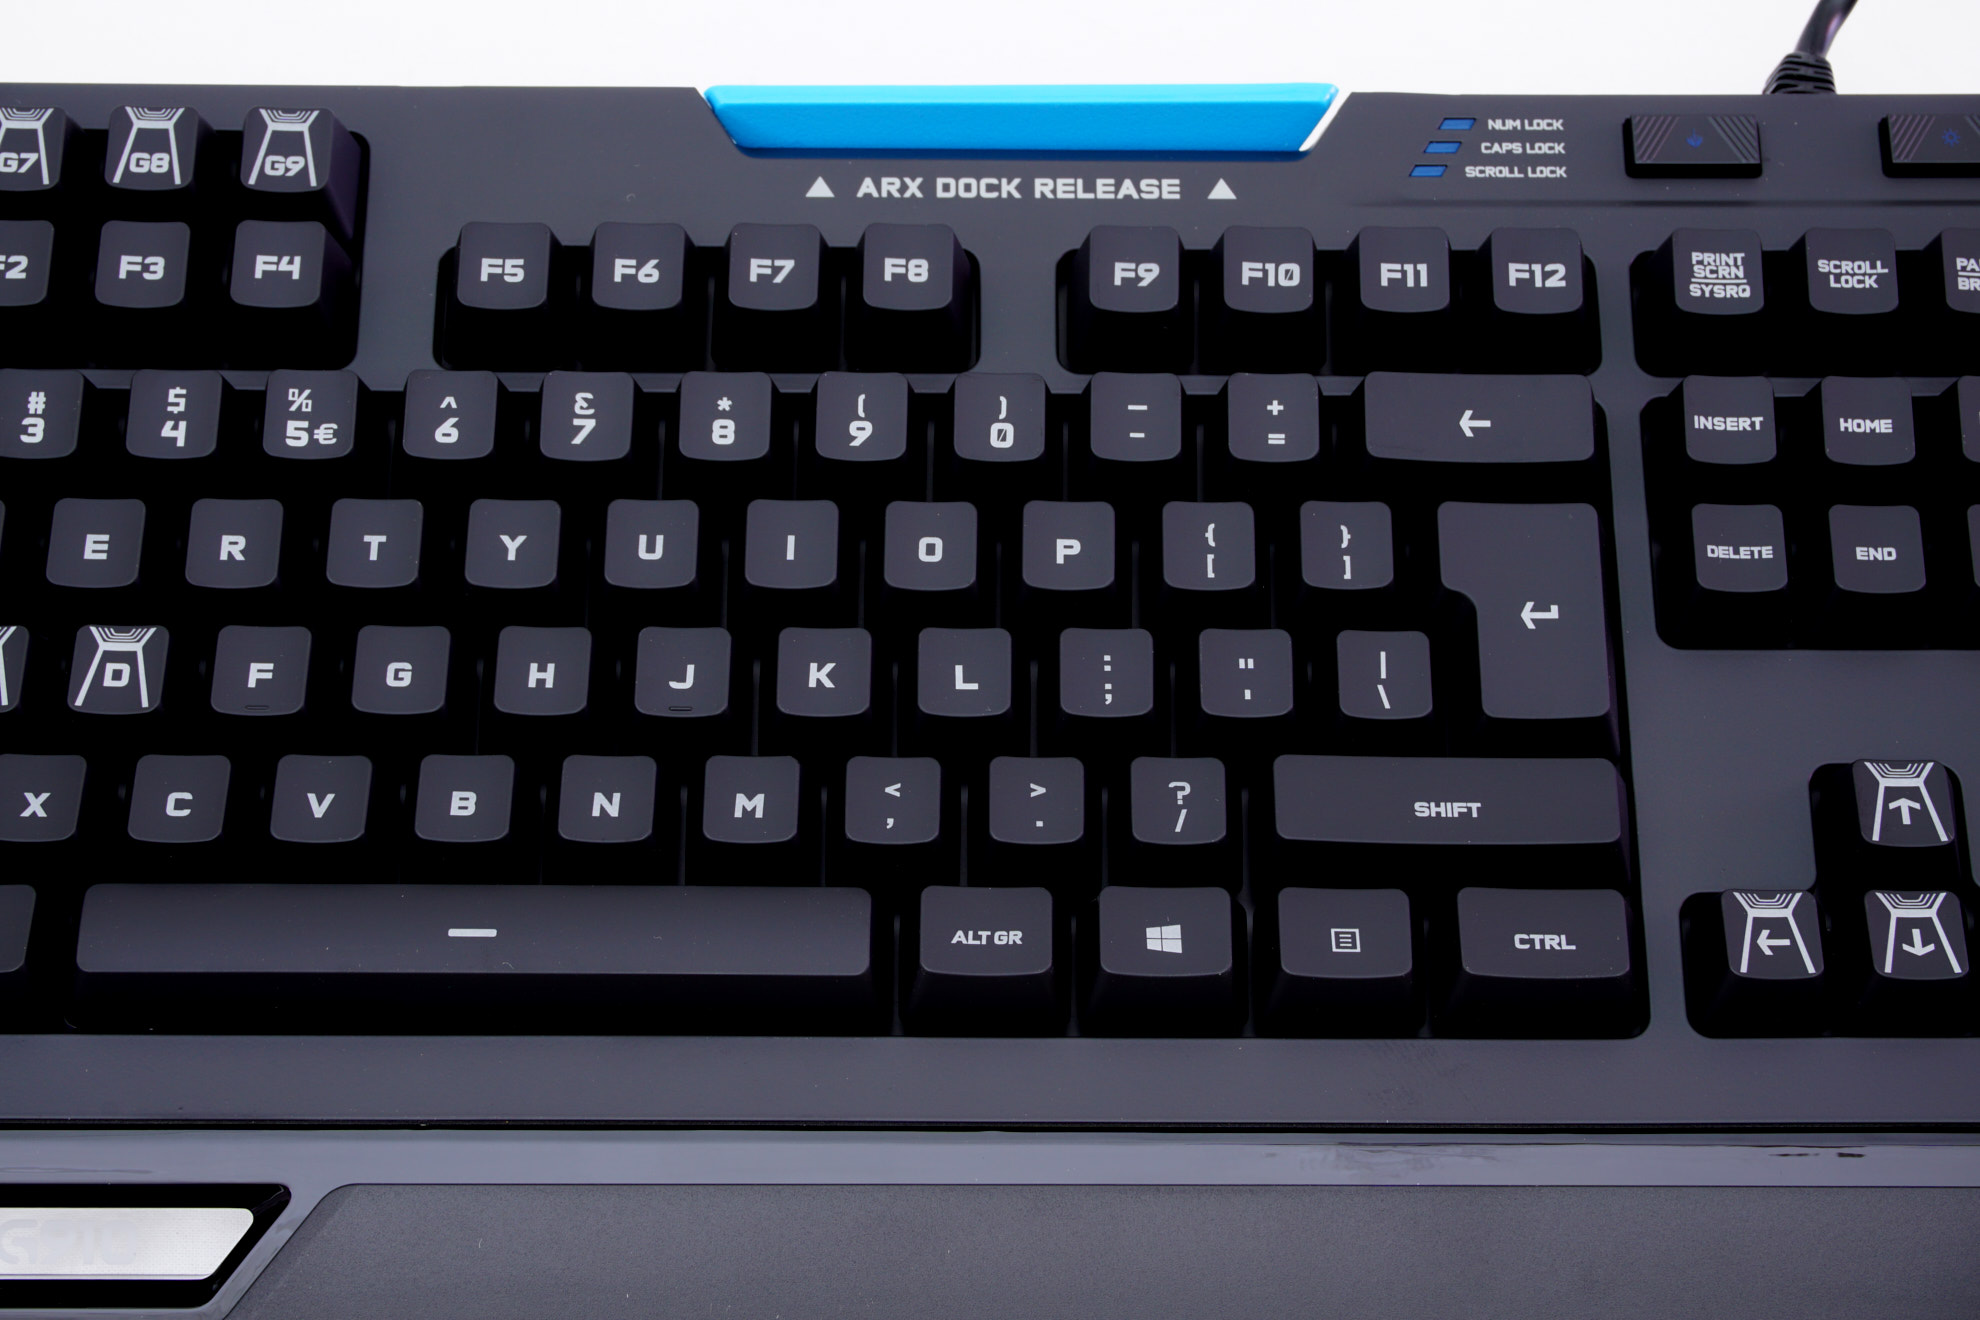 The Logitech G910 Orion Spectrum Mechanical Gaming Keyboard